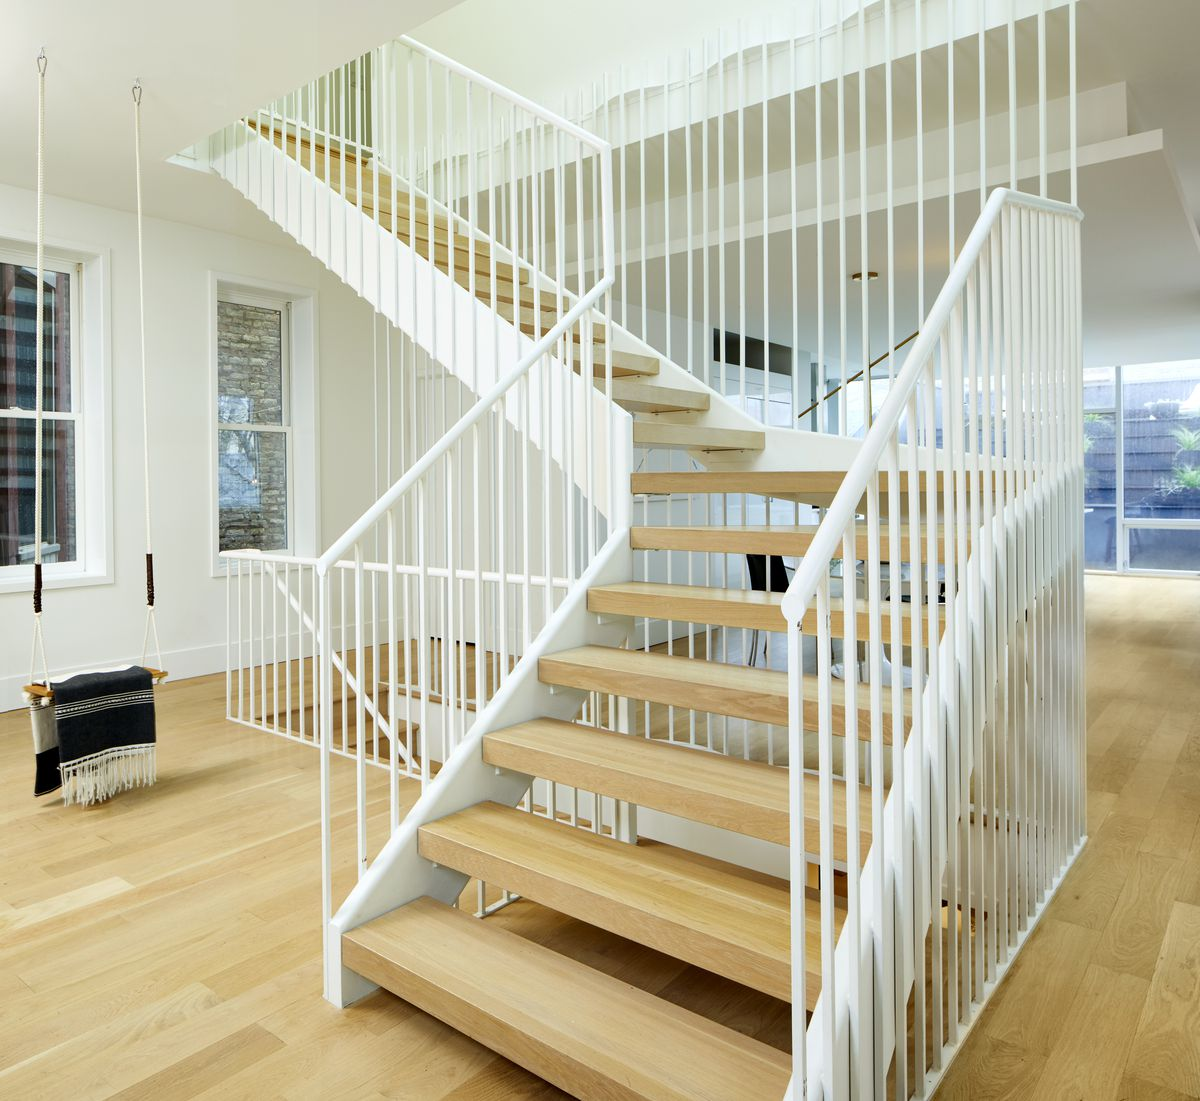 A stairwell is topped by a skylight. The stairs have no treads and the metal rails are thin, this allows natural light to filter to the basement.